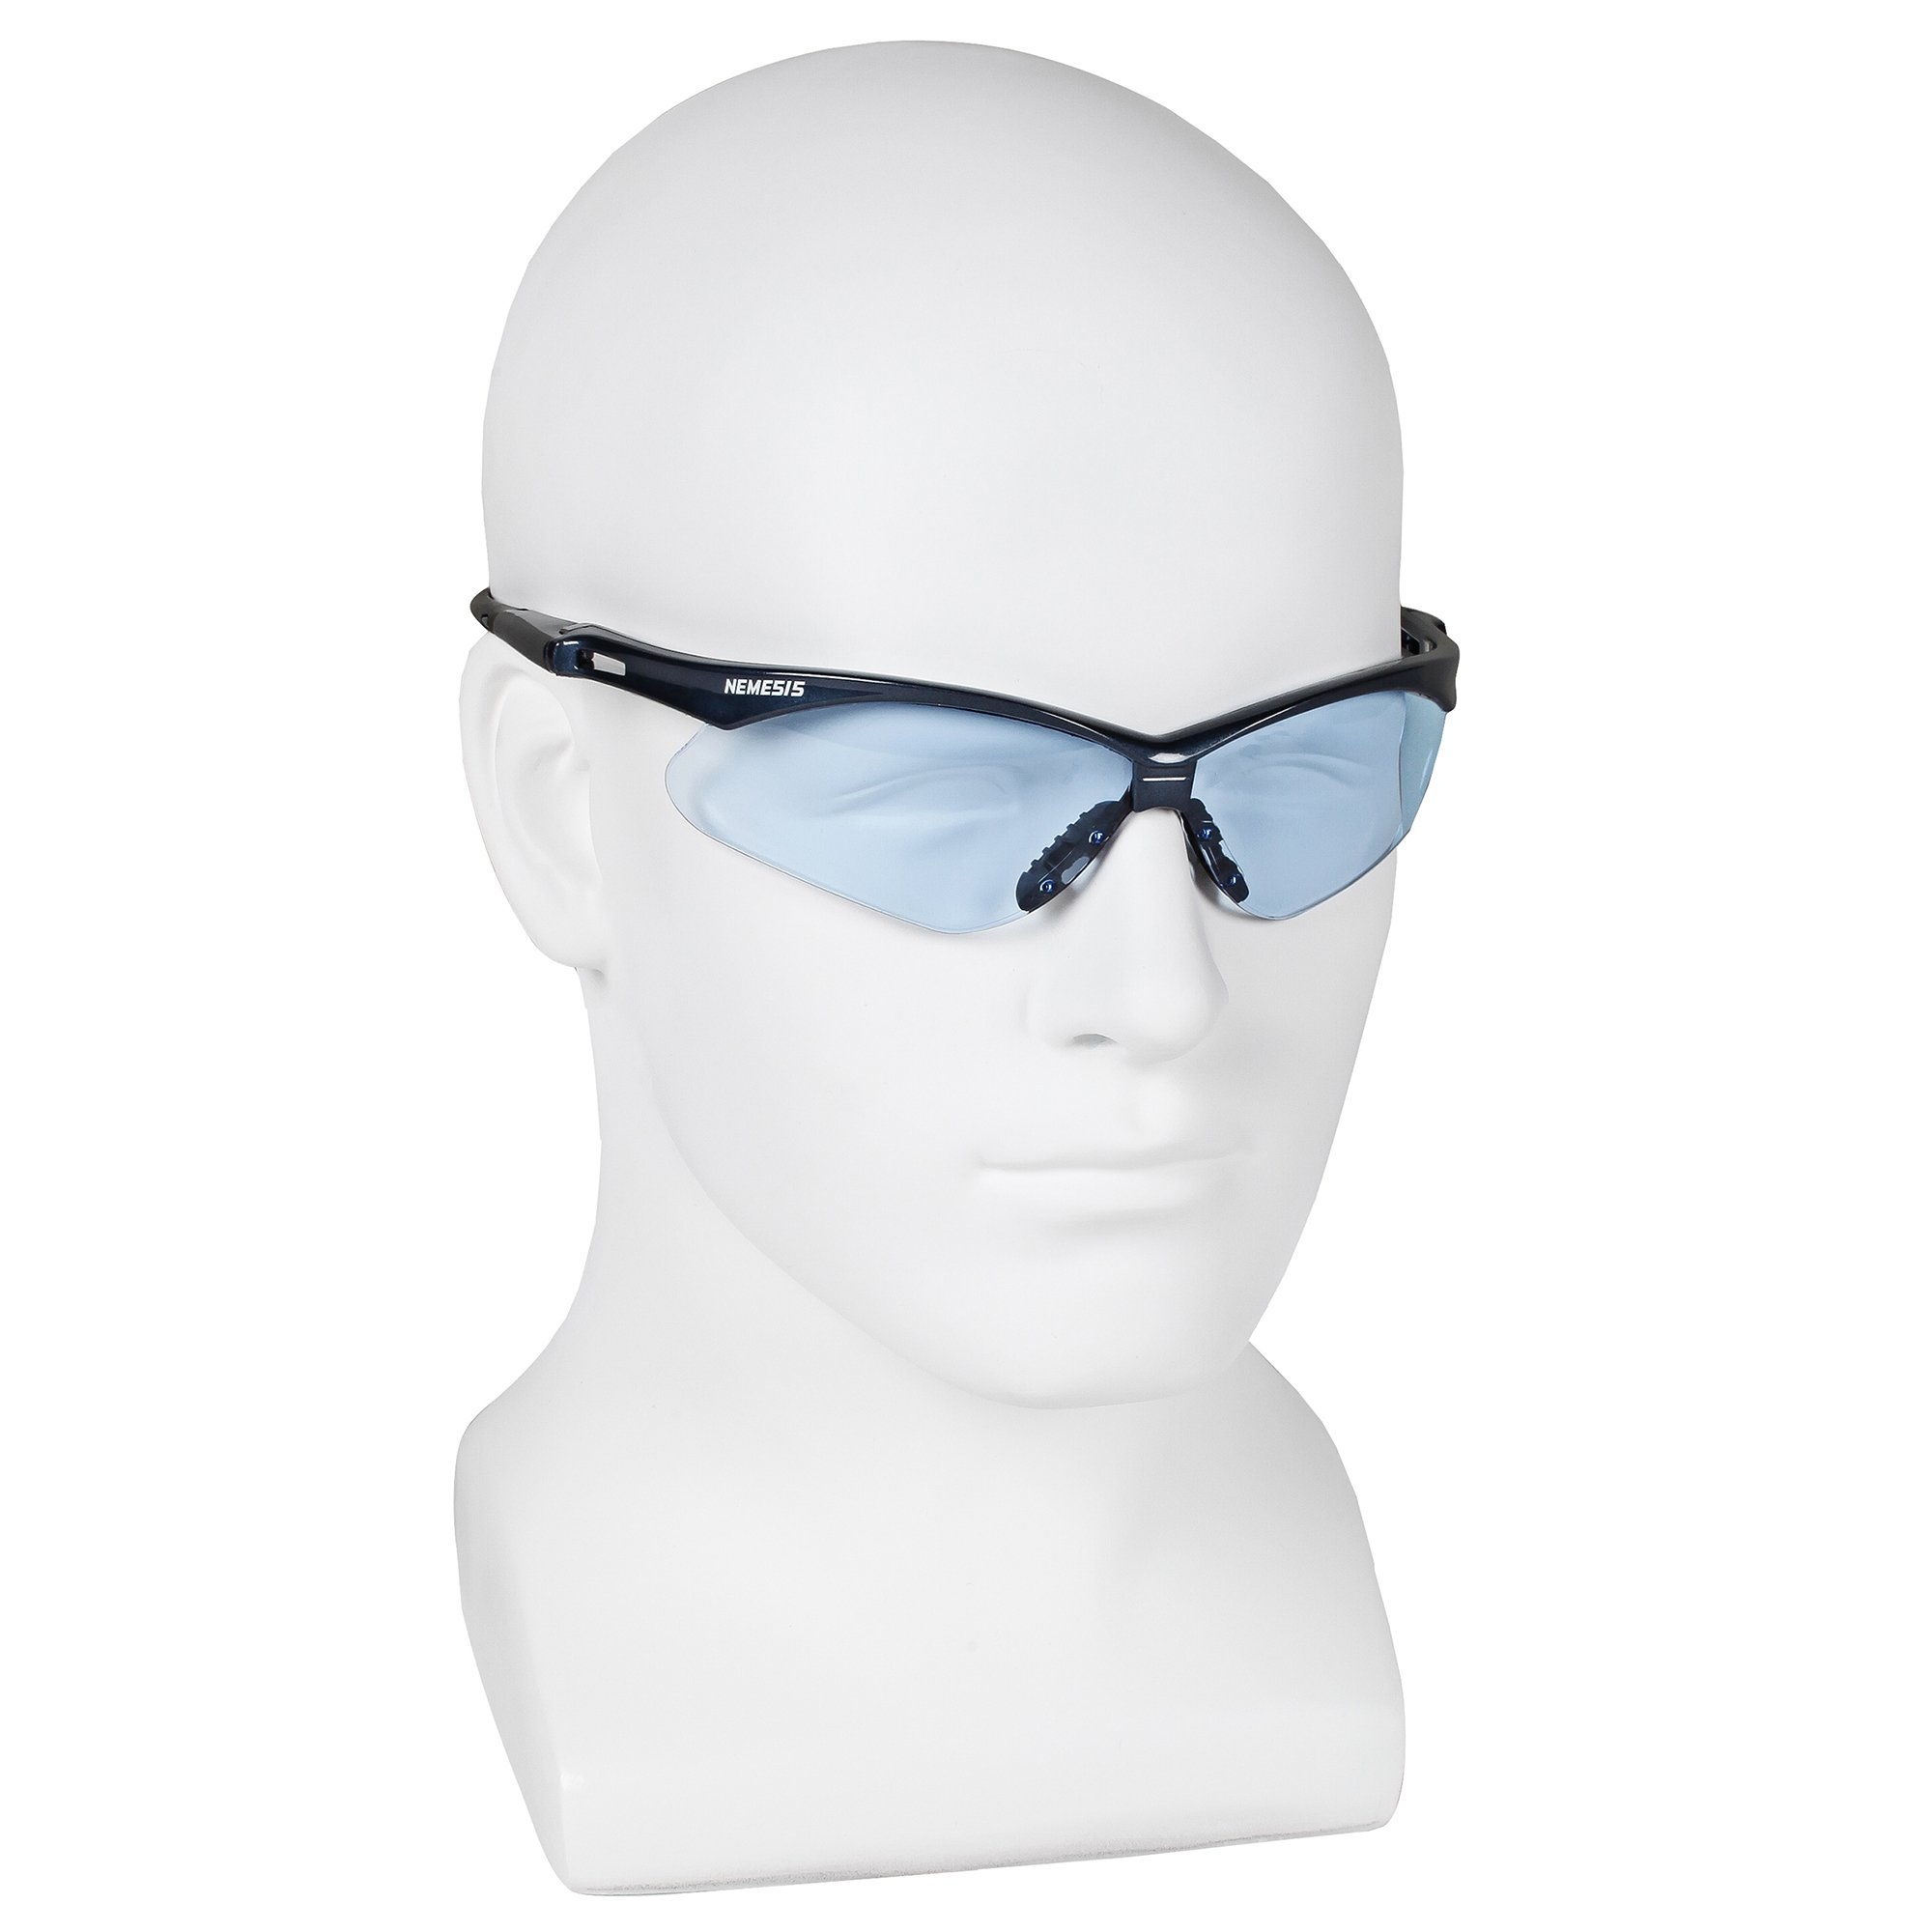 Jackson Safety V30 Nemesis Safety Glasses (19639), Light Blue Lenses with Blue Frame, 12 Pairs / Case by Jackson Safety (Image #4)